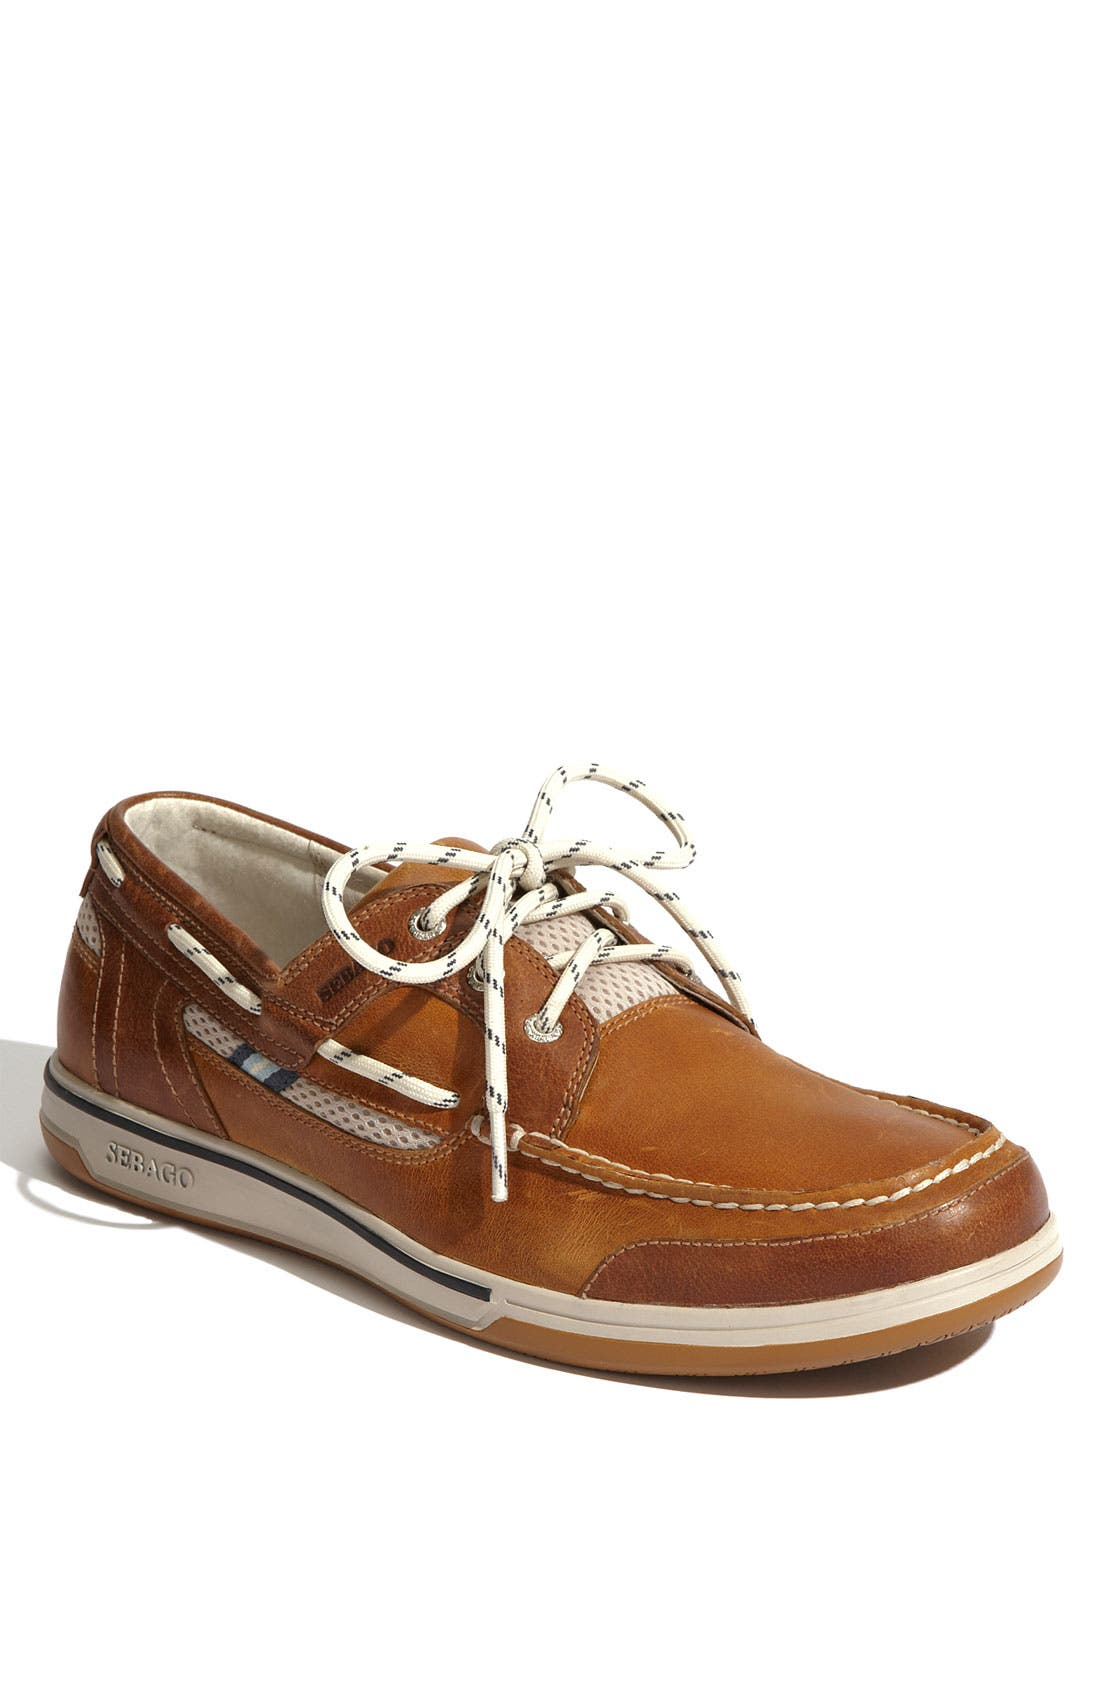 Alternate Image 1 Selected - Sebago 'Triton' Boat Shoe